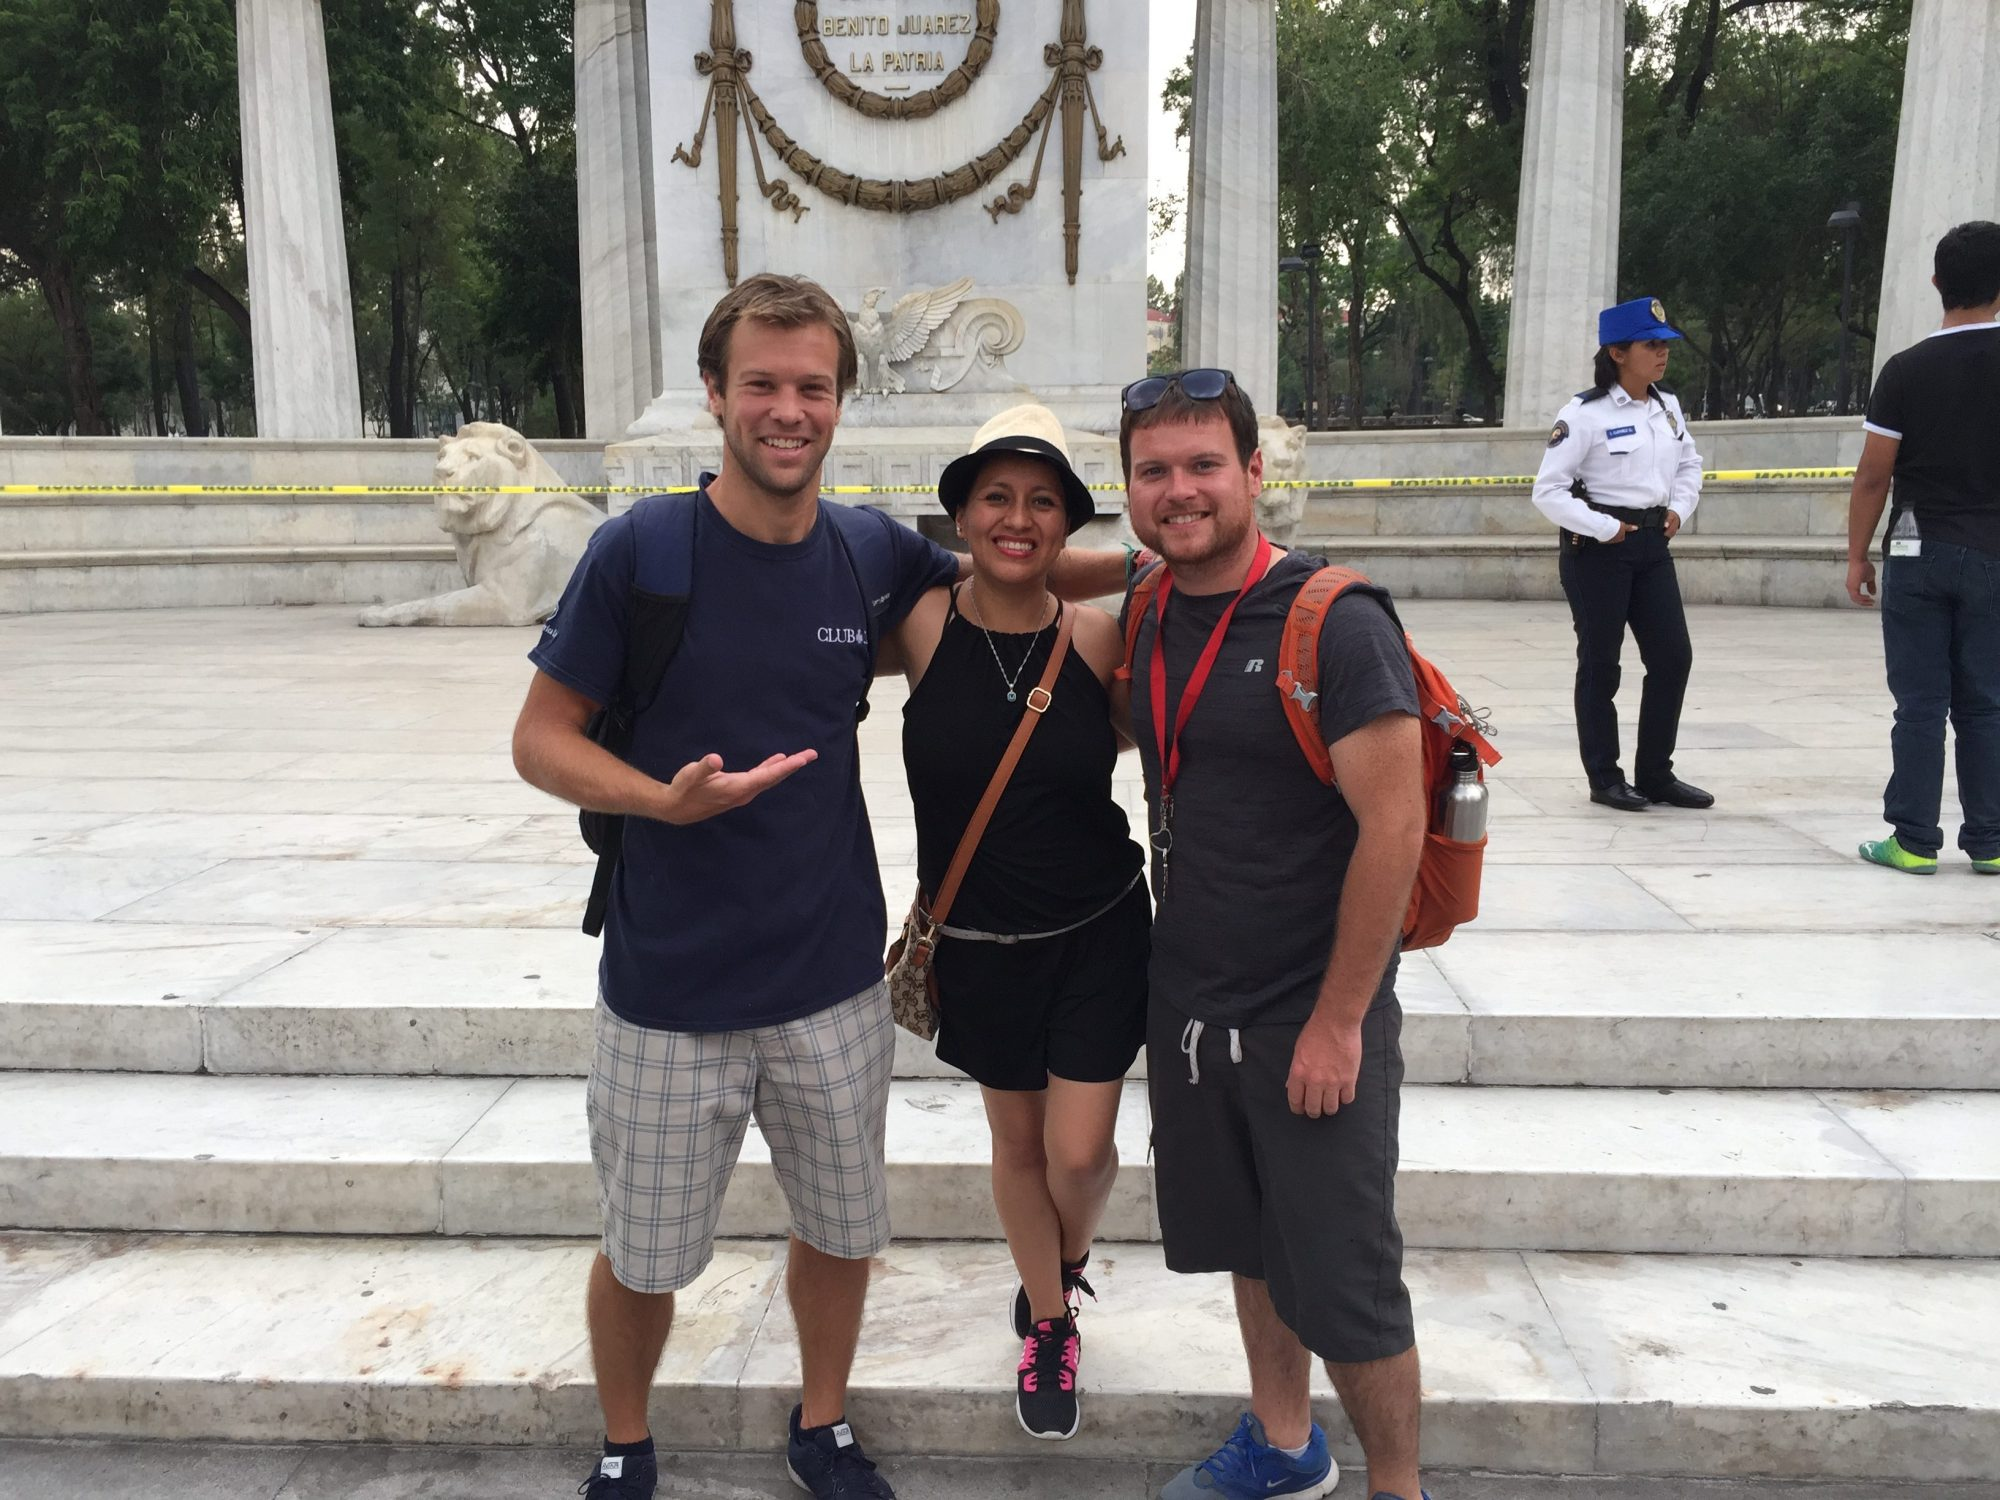 Day 83 – Mexico City & Reuniting With Friends